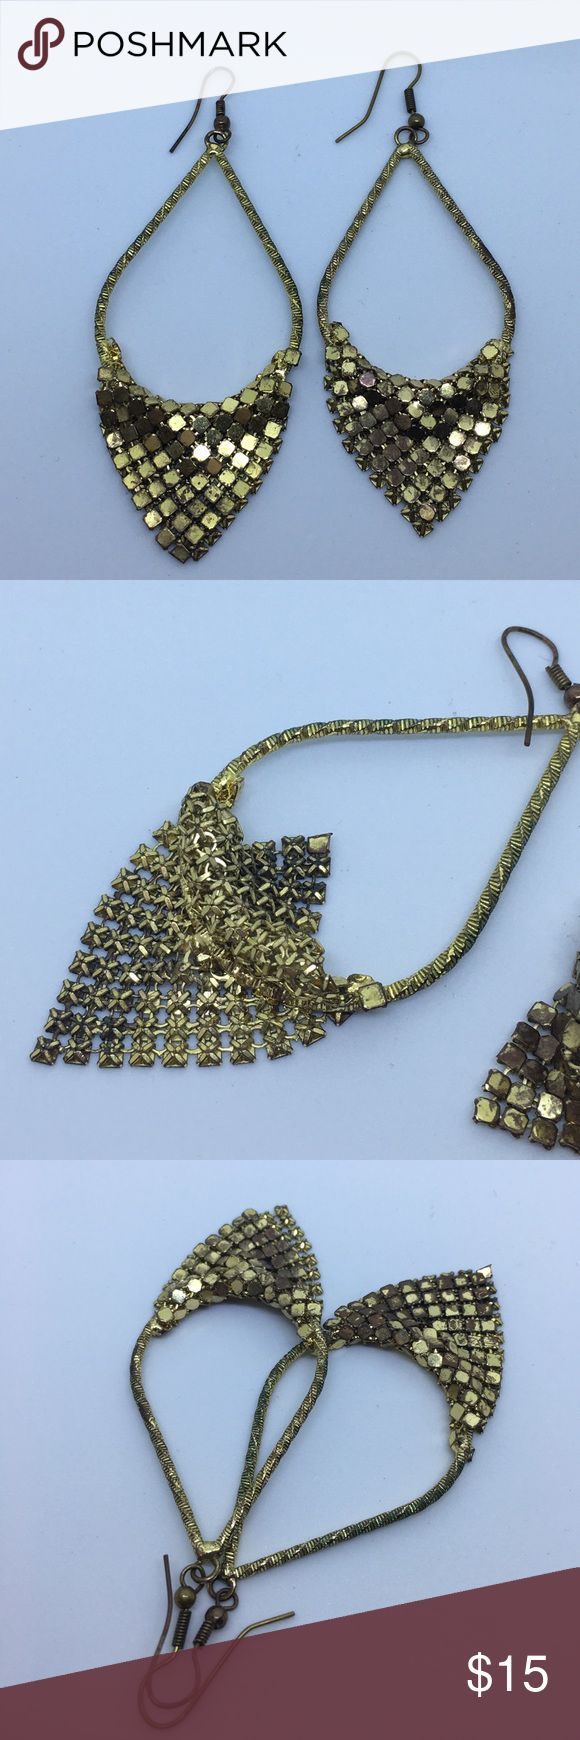 """Vintage Gold Mesh Dangle Earrings Flea Market Find!  Gorgeous gold snakeskin mesh draped over teardrop shaped dangle earrings.  Without the hook, these hang 3"""" long and are 1.5"""" at the widest part.  Good used condition; does show signs of wear on the metal, but I also haven't tried to clean them. Vintage Jewelry Earrings"""